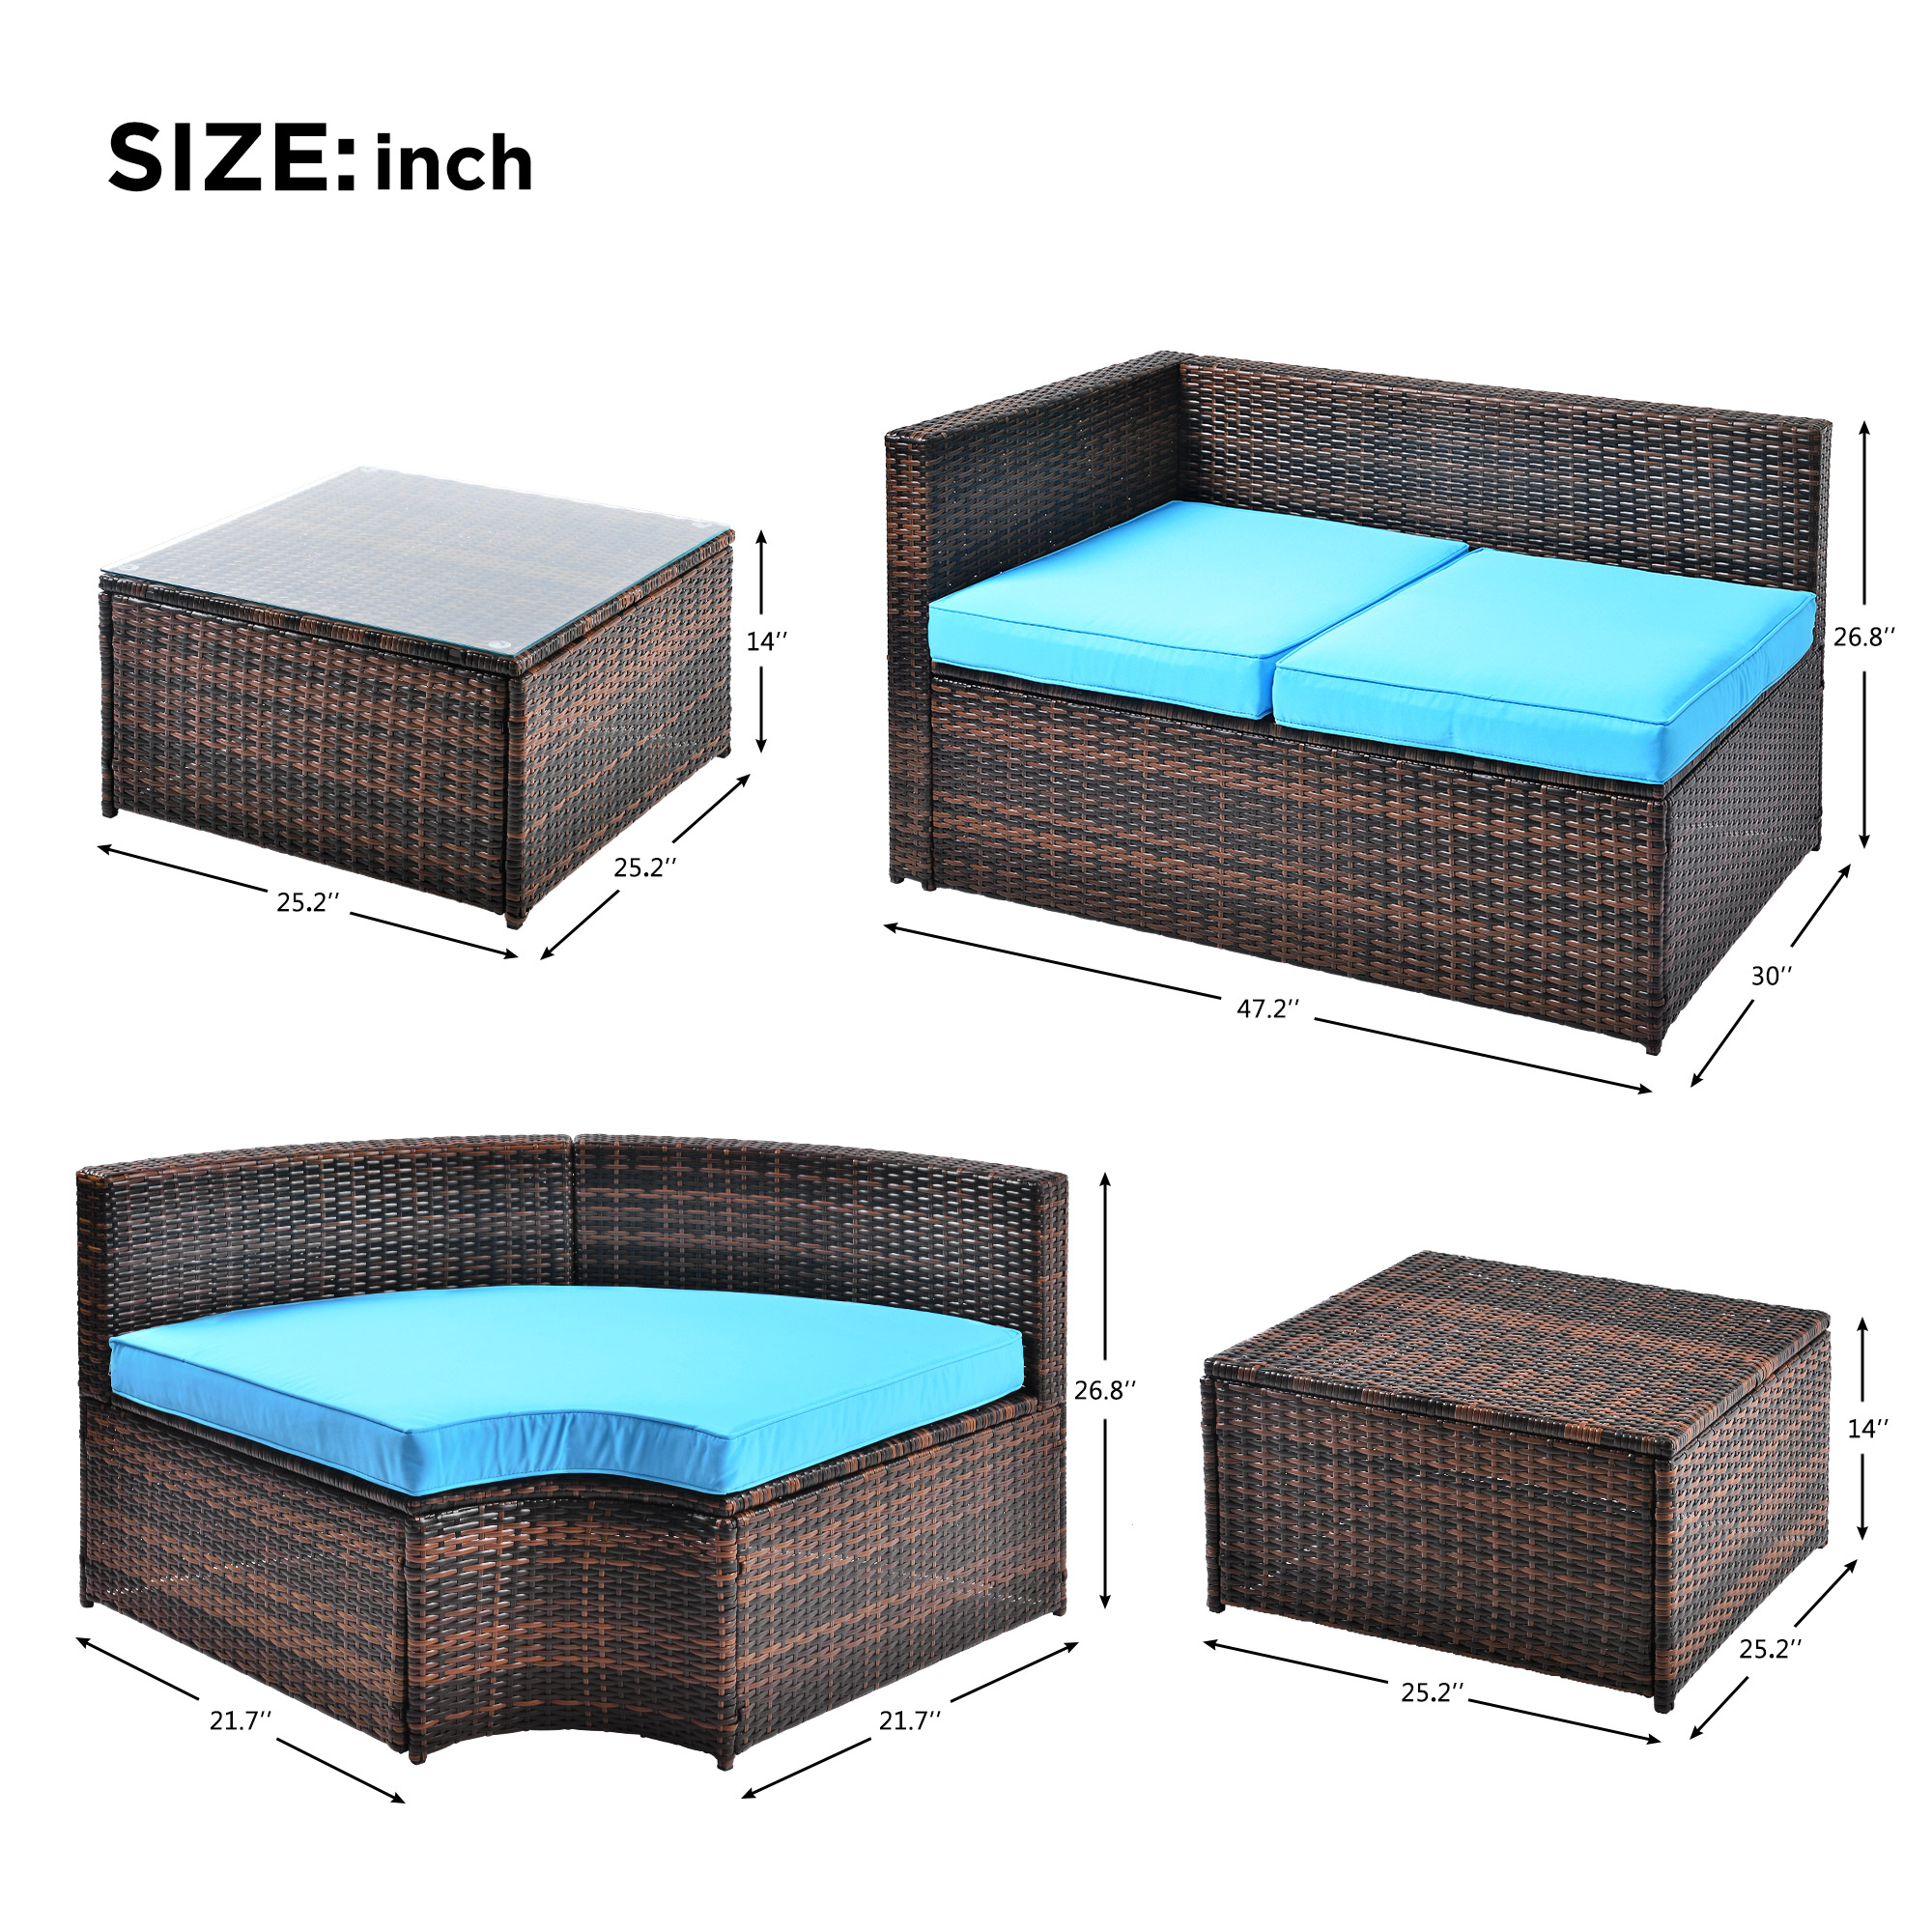 TOPMAX 5Pcs Patio Furniture Set Outdoor Sectional Conversation Set with Soft Cushions Fabric Sofa